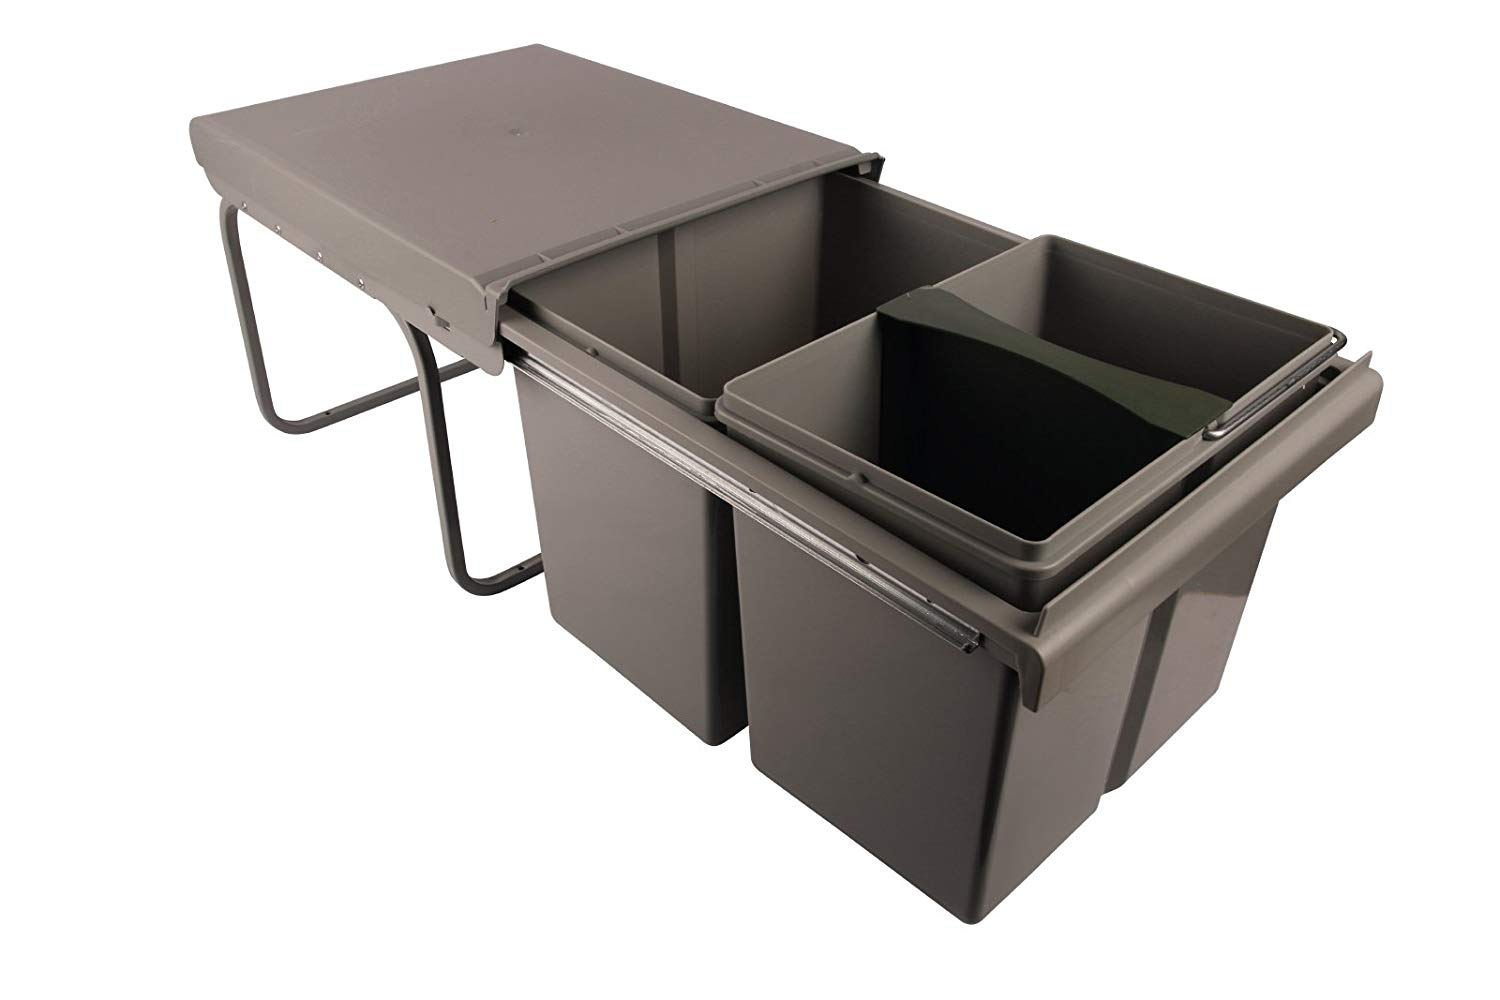 Sanitop-Wingenroth 280174Bin 2x 15L and 1 x 15L/3L/2Double or Triple Divisions, Waste Bin Waste Separator Bin Cabinet Floor Mounting, Full Extension, Plastic/Steel Grey